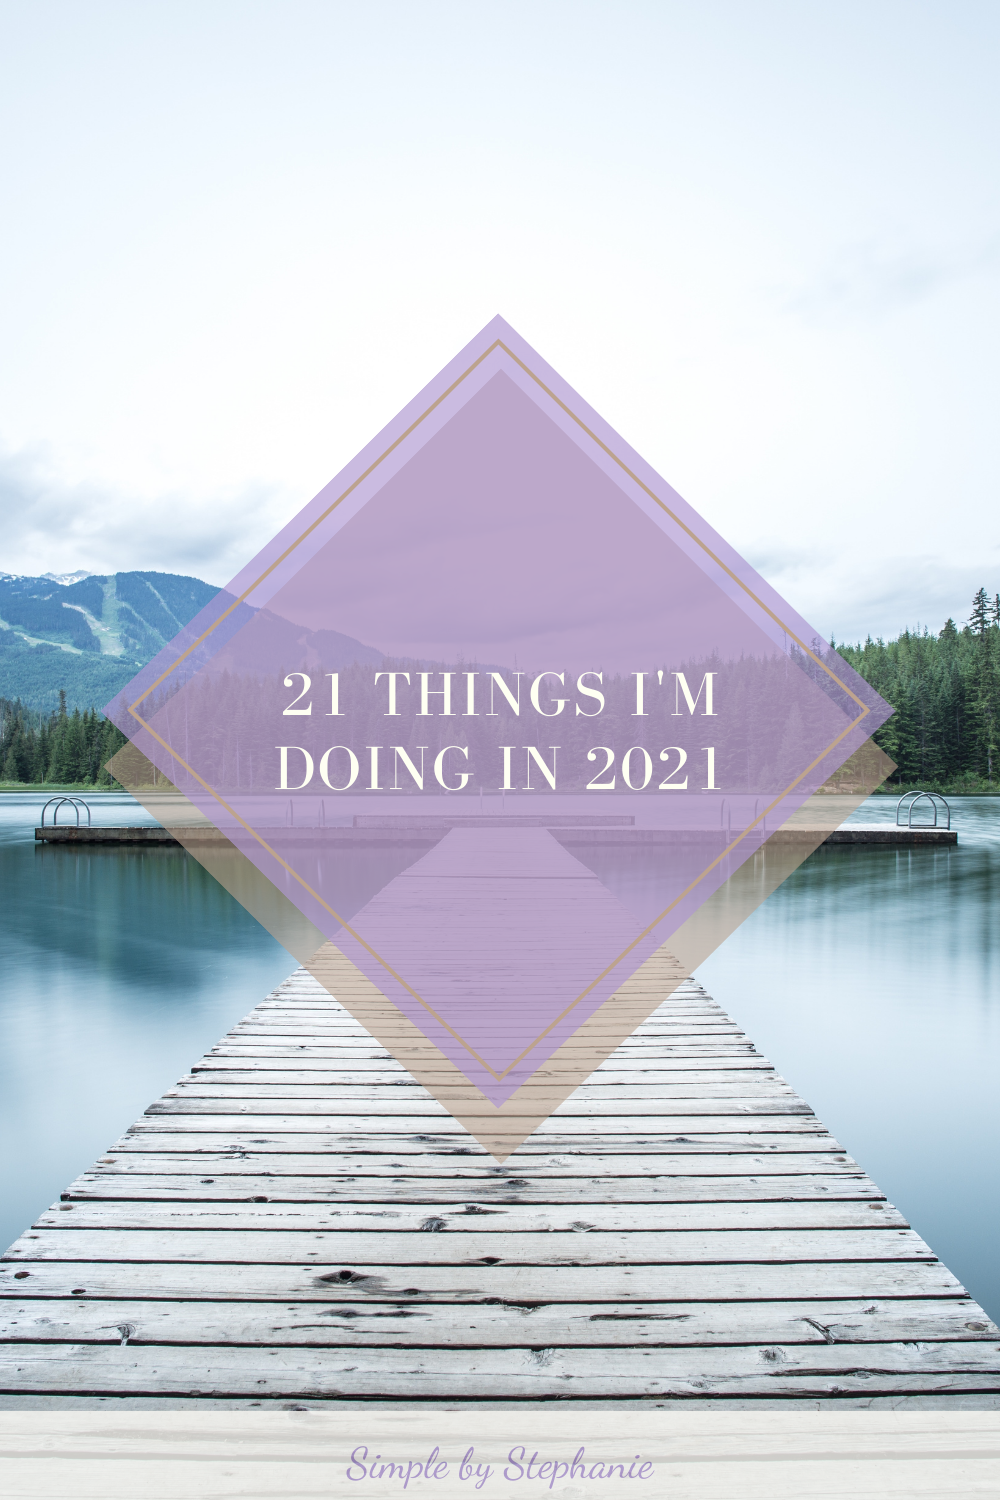 21 Things I'm Doing in 2021